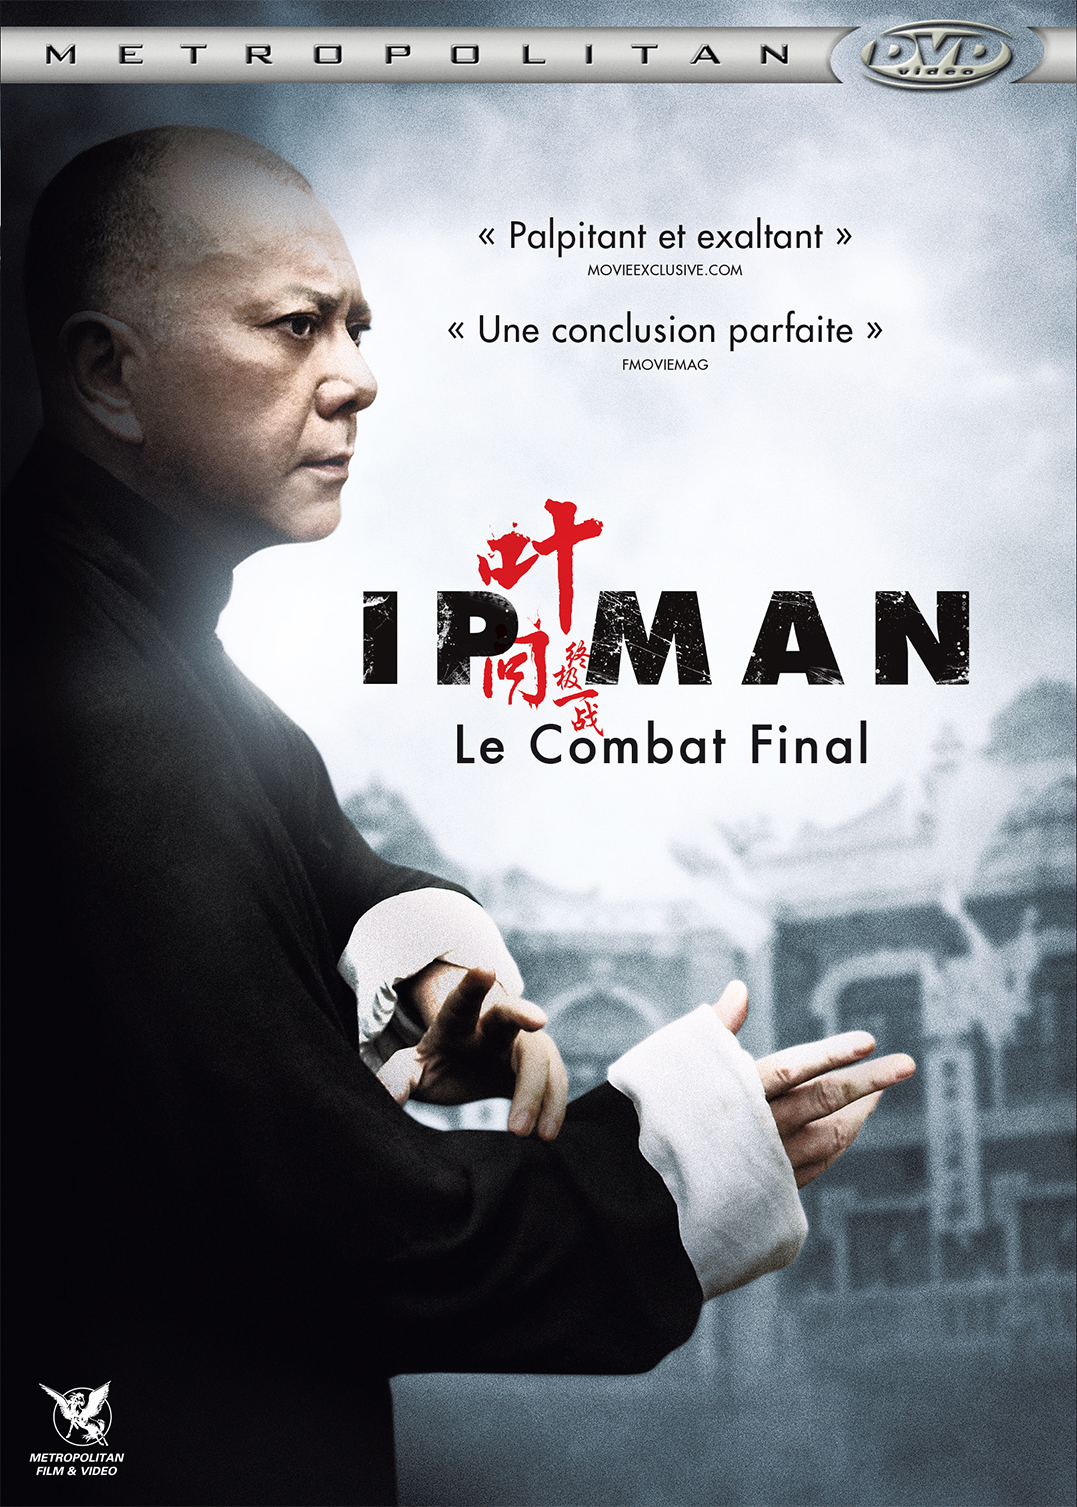 ip man le combat final film 2013 allocin. Black Bedroom Furniture Sets. Home Design Ideas